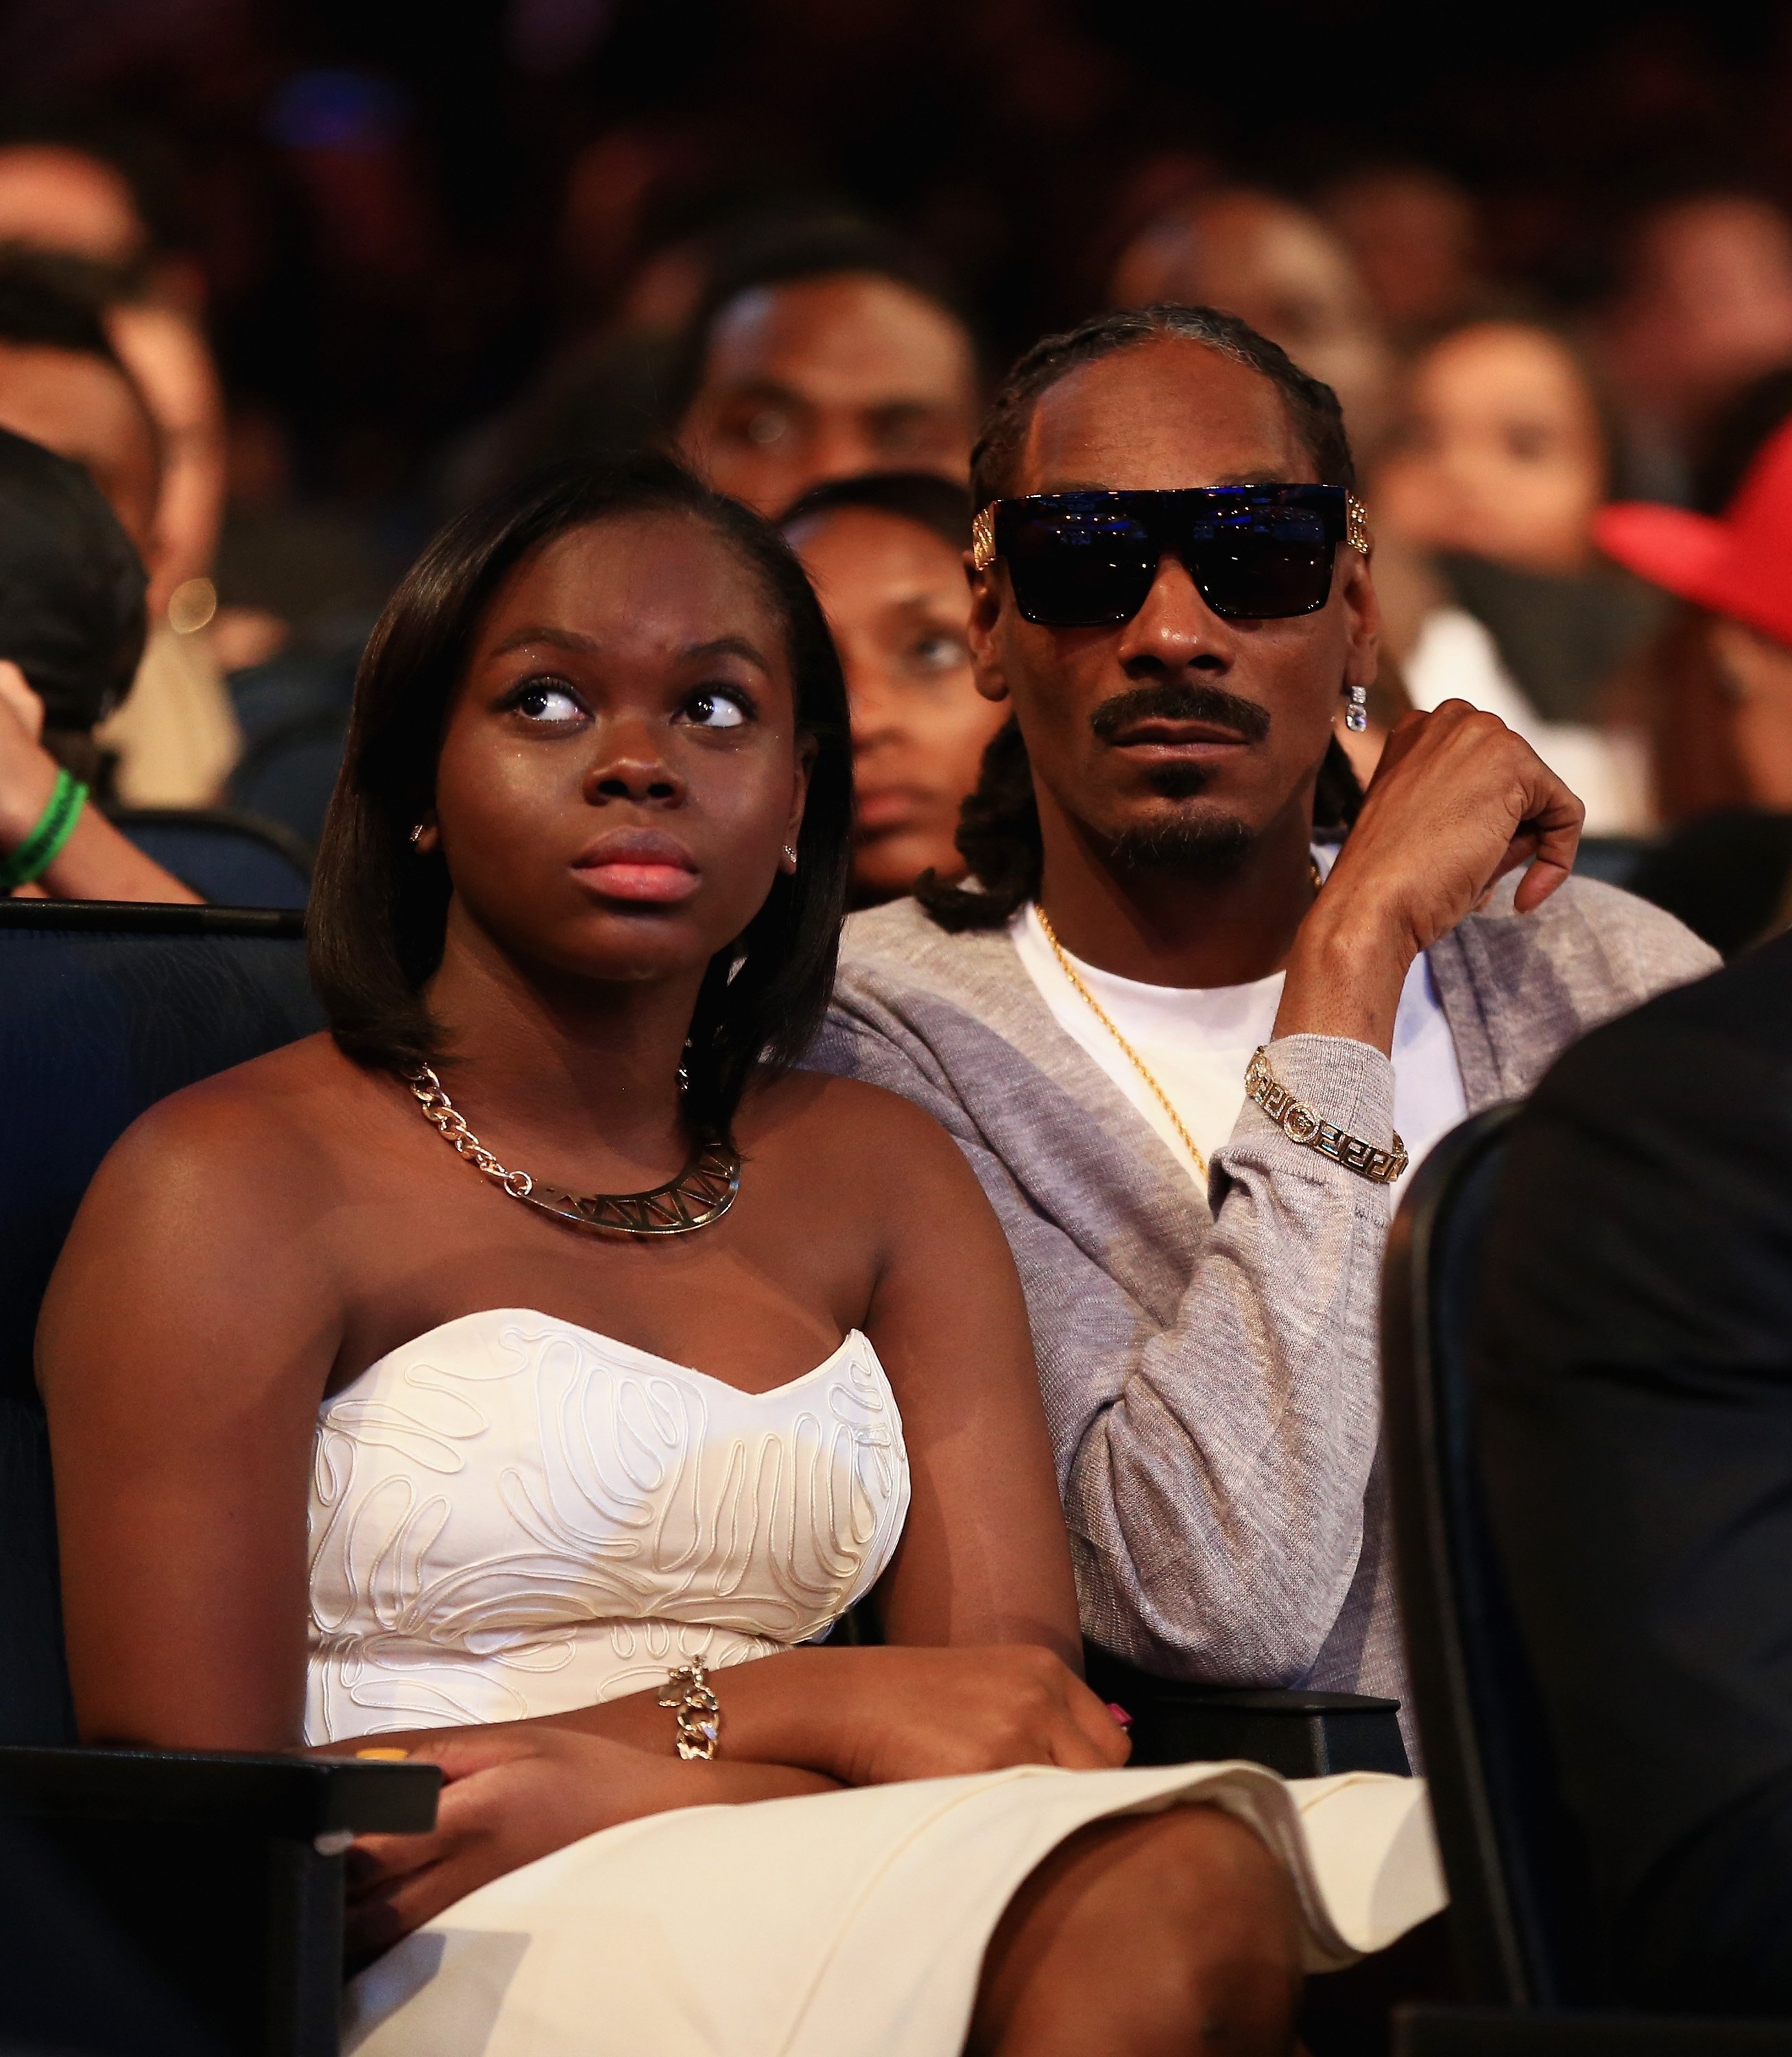 Snoop Dogg & Cori Broadus at the BET AWARDS on June 29, 2014 in California   Photo: Getty Images